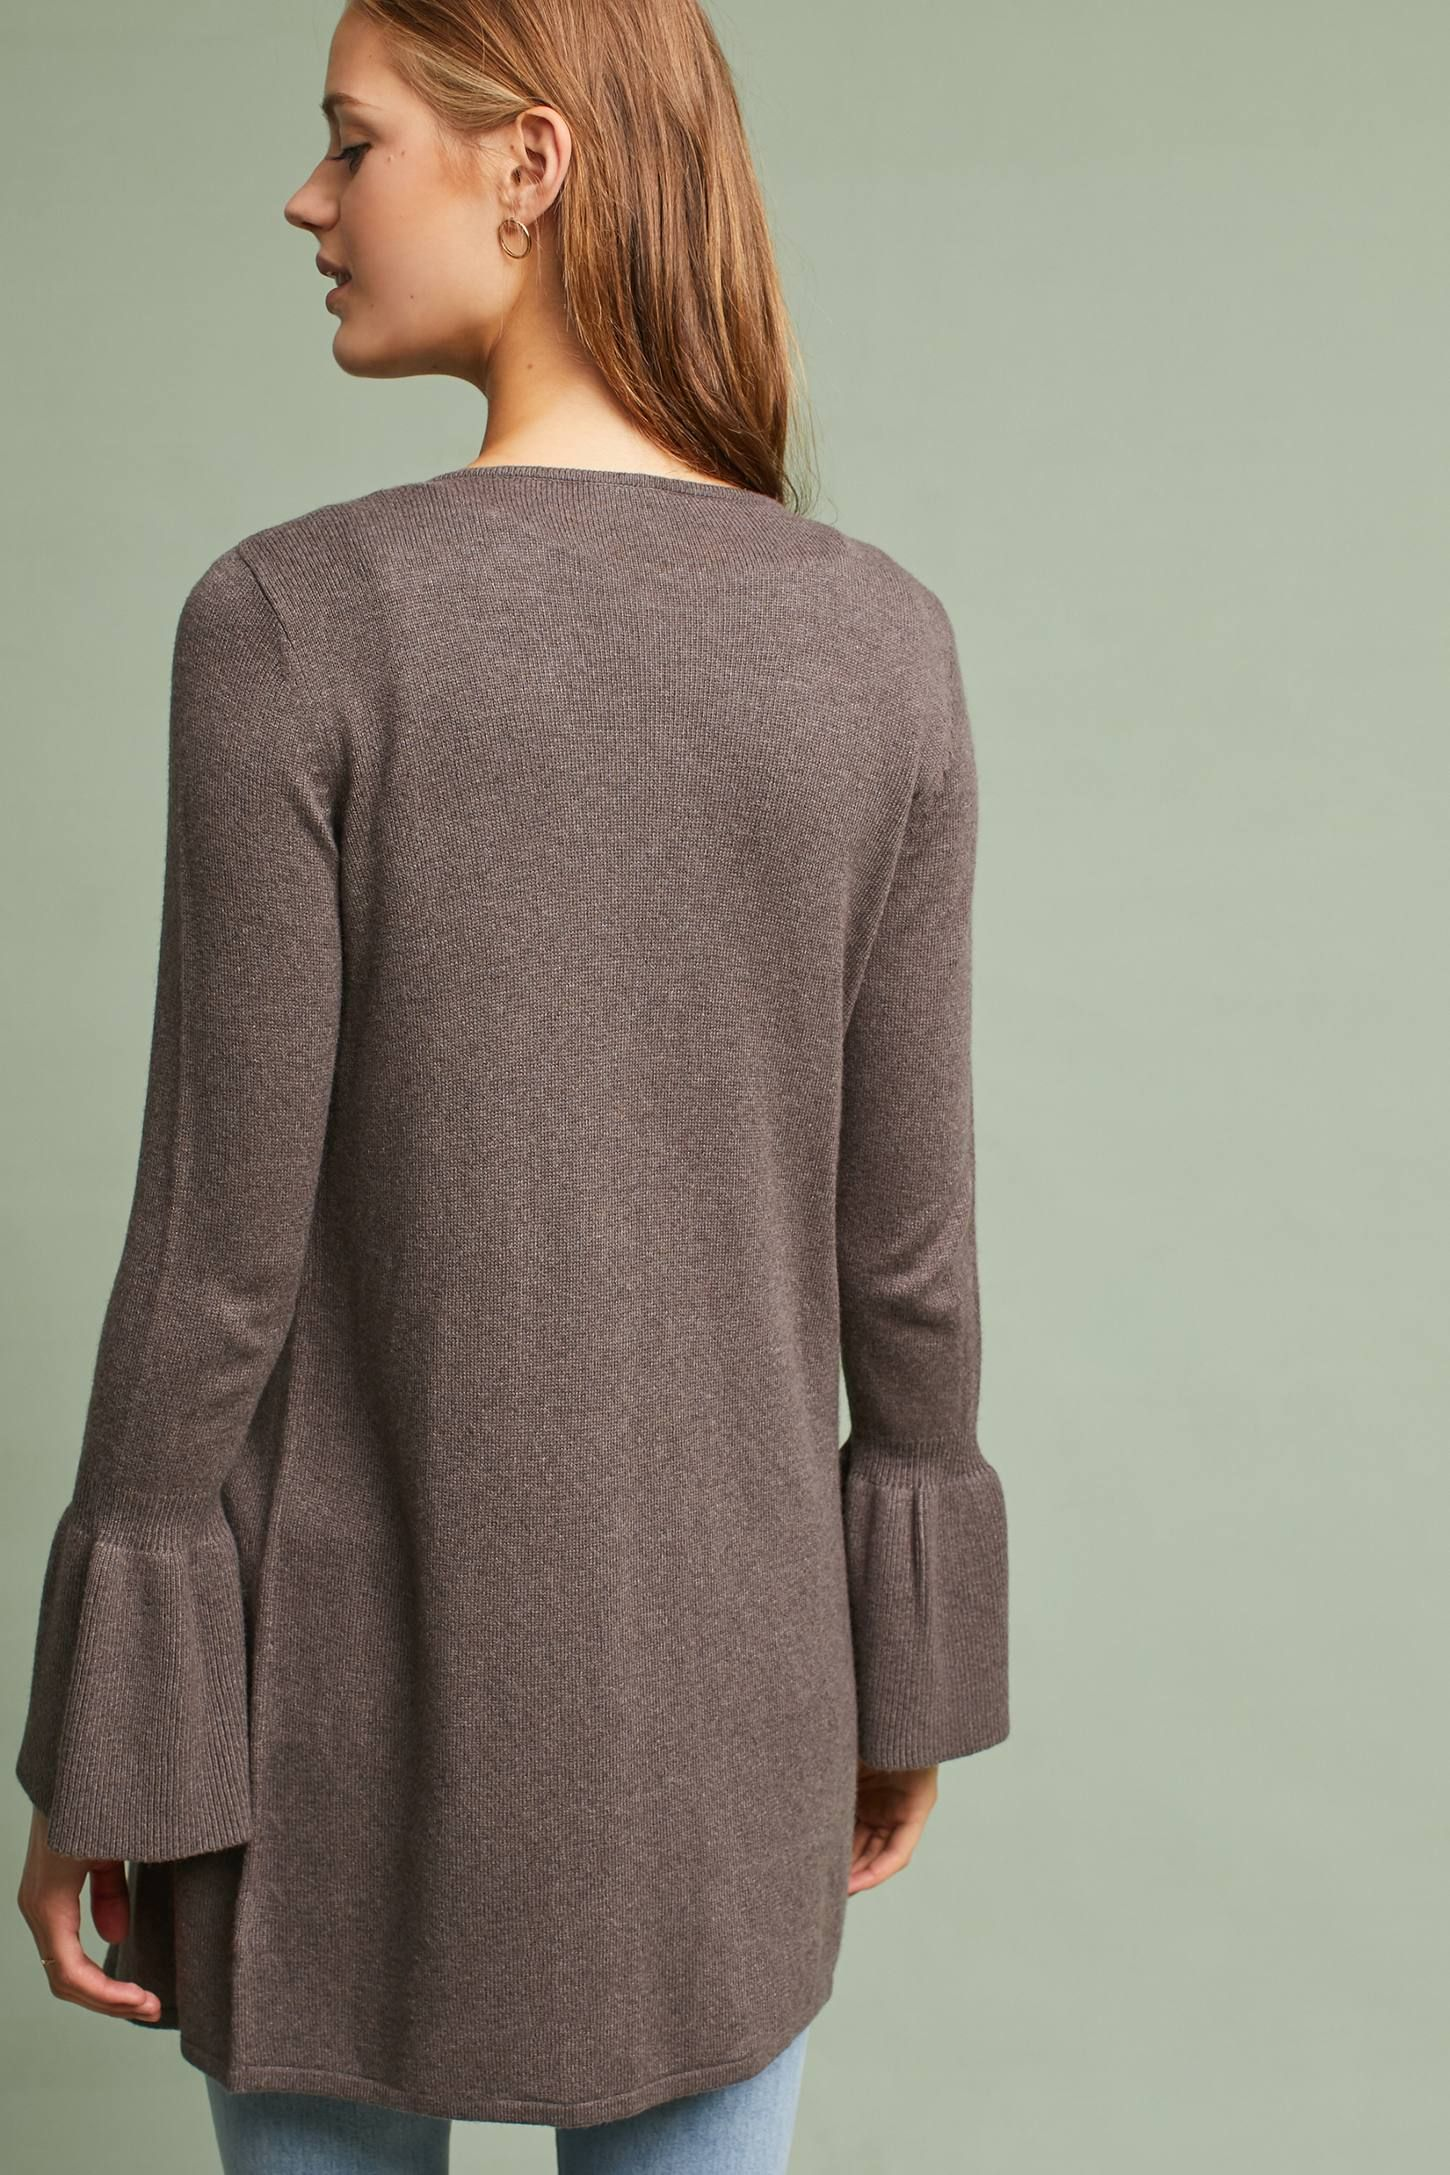 Bell-Sleeve Waterfall Cardigan | Anthropologie, Spring style and ...